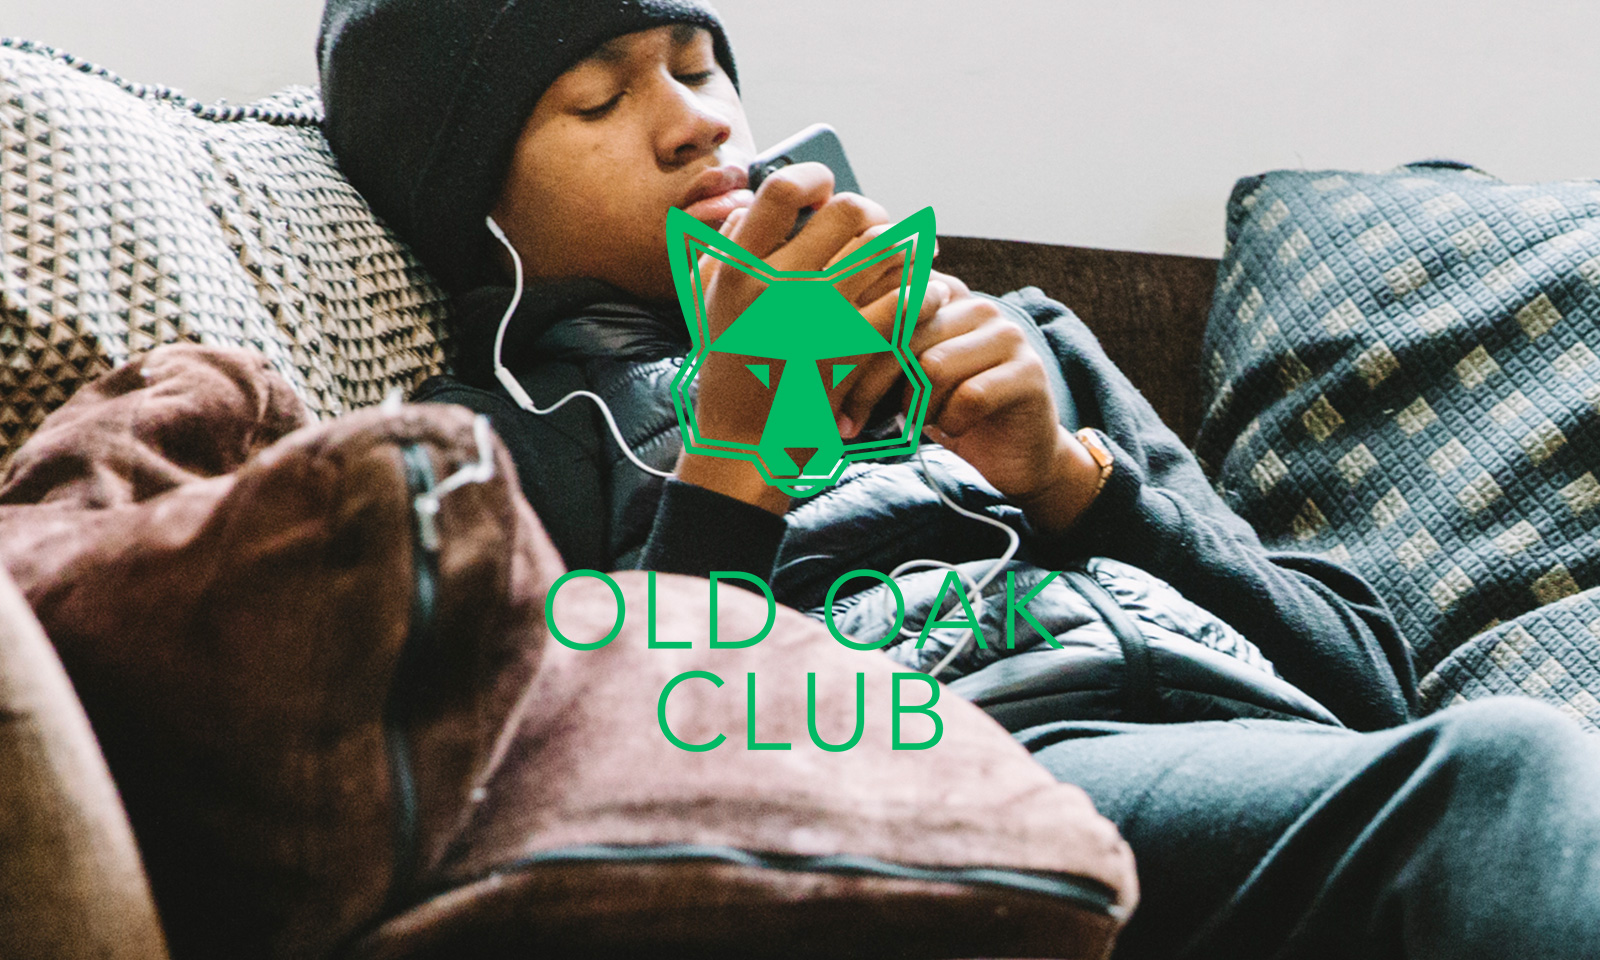 Old Oak Club - Our club is designed to help young people in East Acton find a new passion, get more active and improve their self-confidence. We'd be nothing without our members, and our door is always open to new ones.